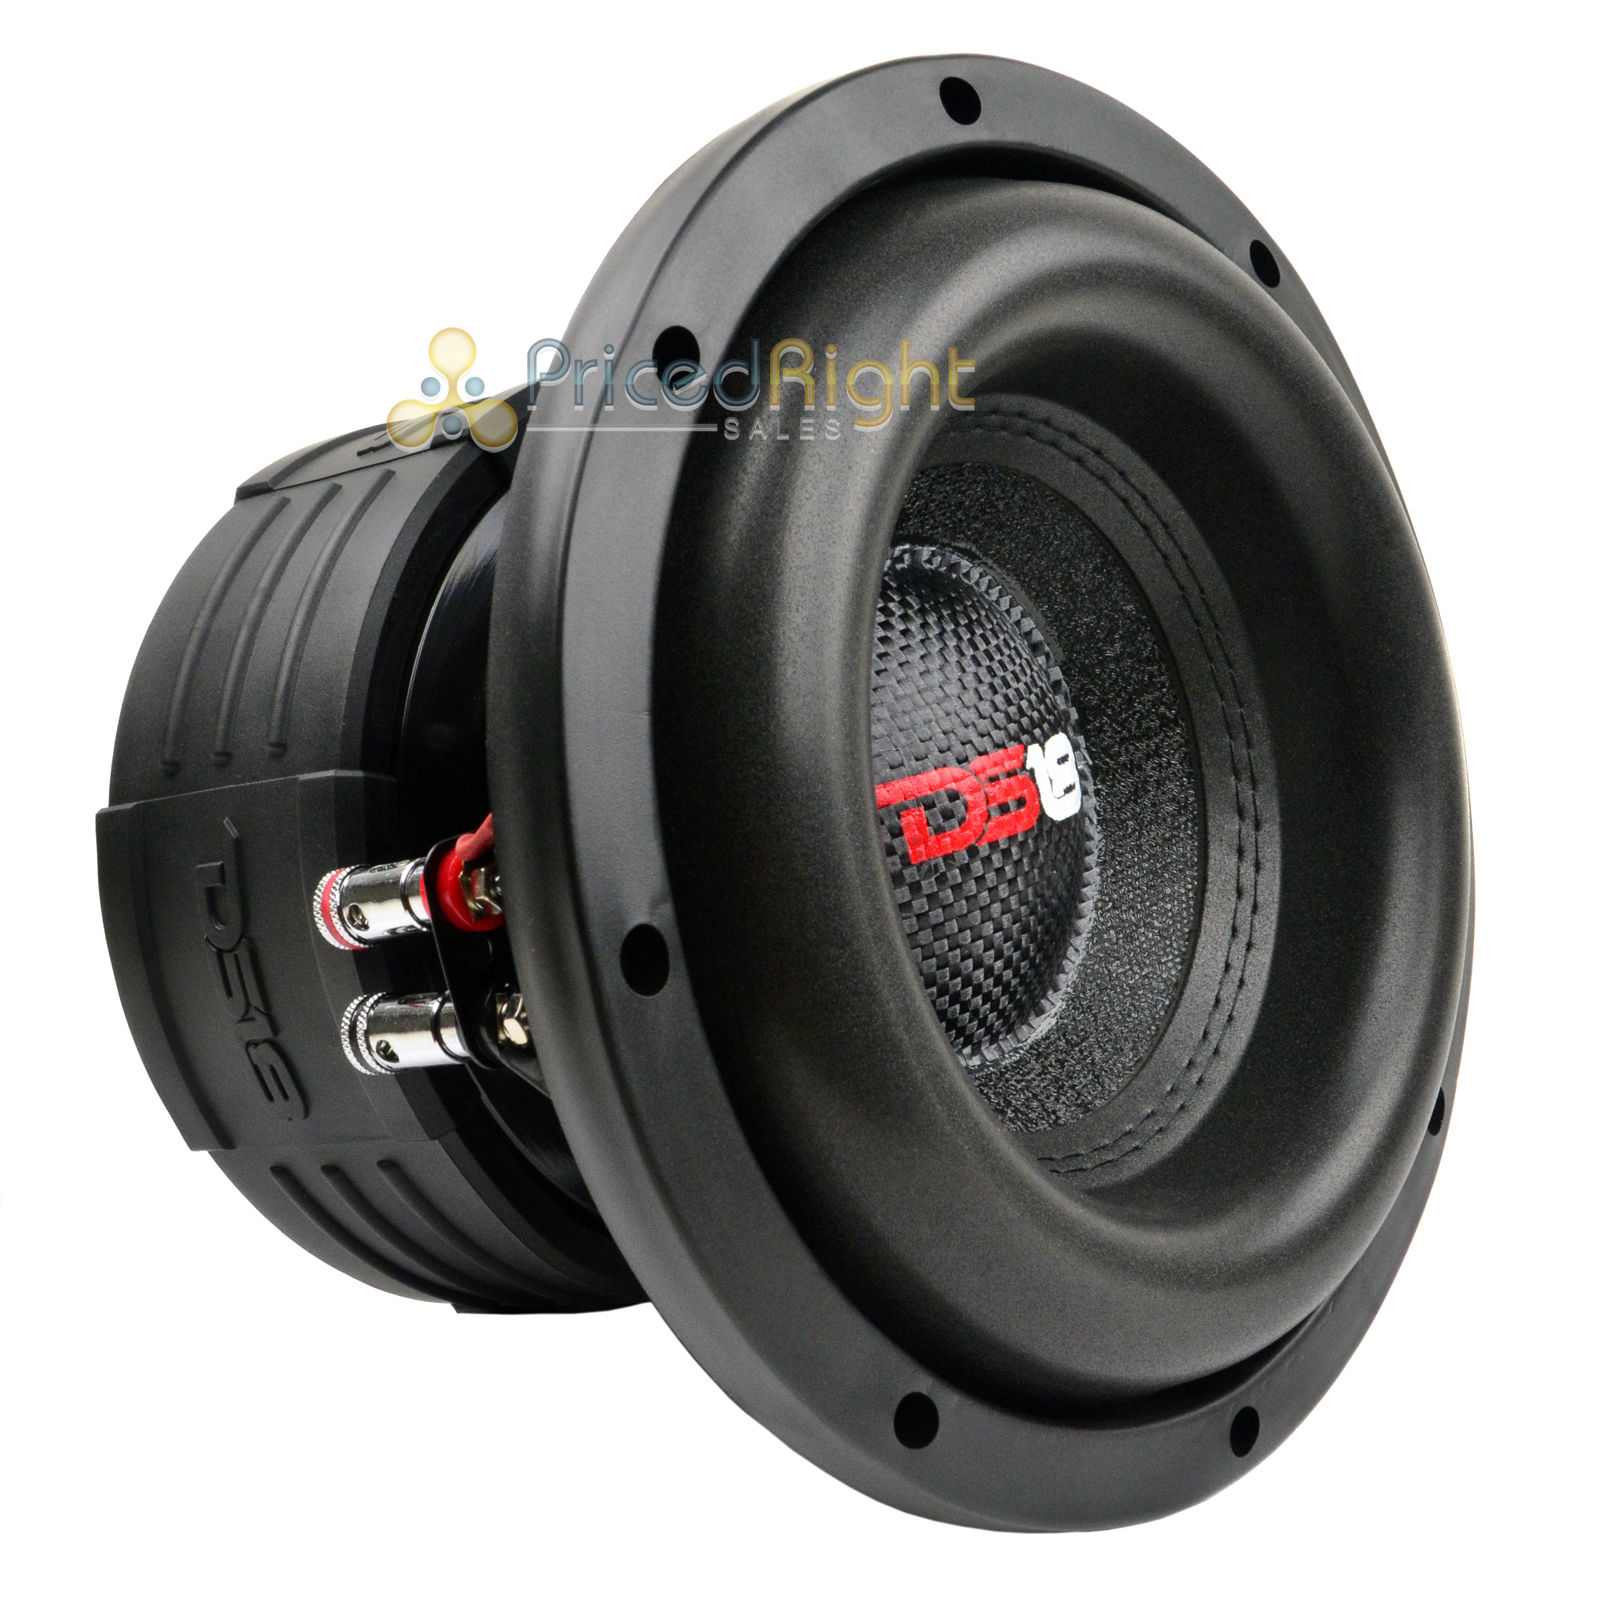 "Sub Speaker 8 Ohm Ds18 Elite Z8 8"" Subwoofer Dual 4 Ohm 900 Watts Max Bass"